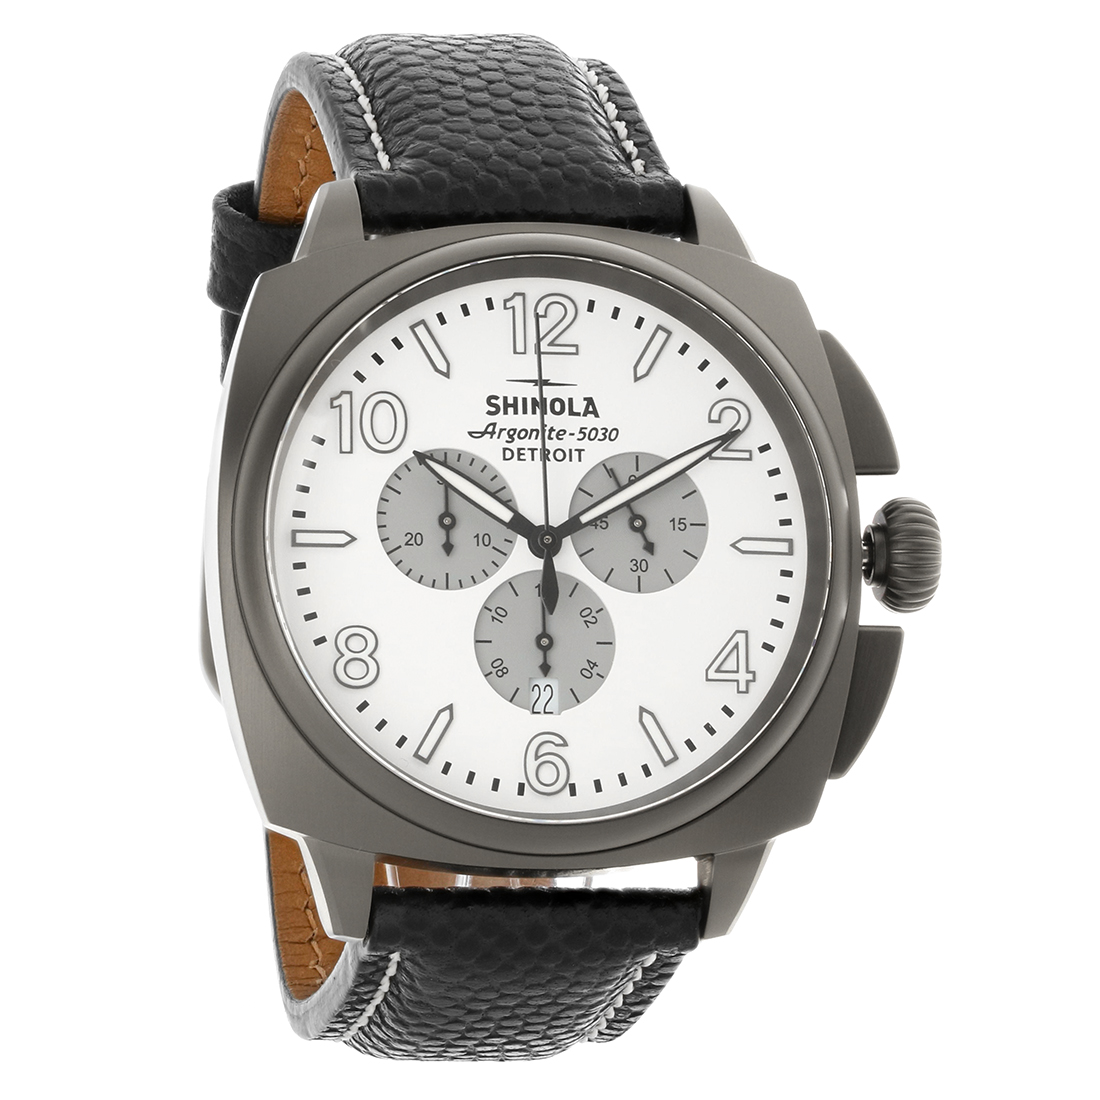 shinola the brakeman mens argonite 5030 detroit swiss quartz watch 10000188